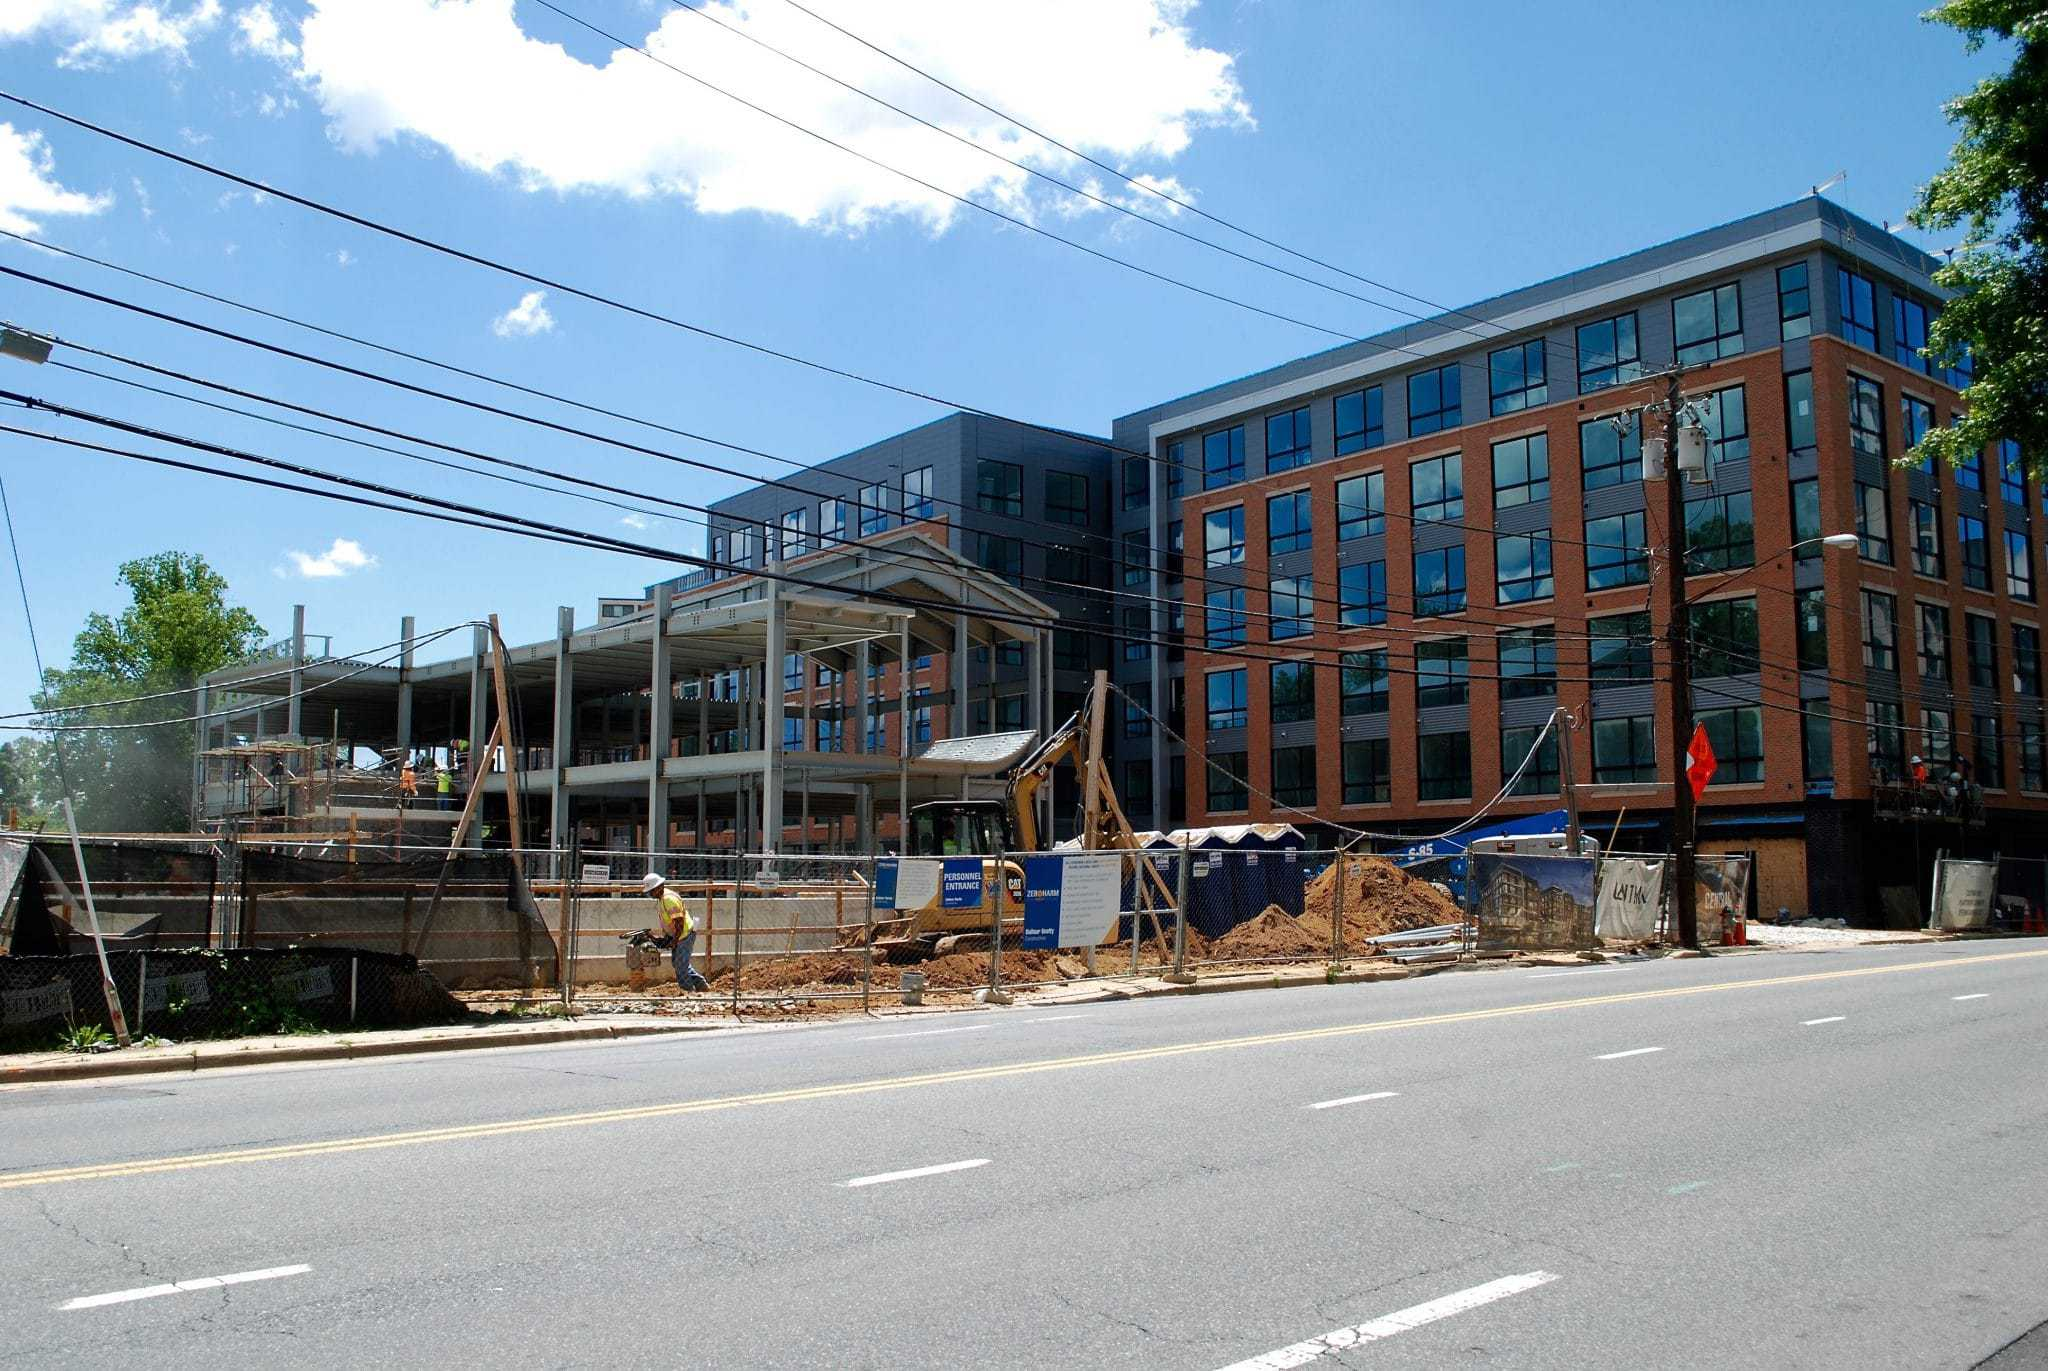 Mixed-use development close to being finished